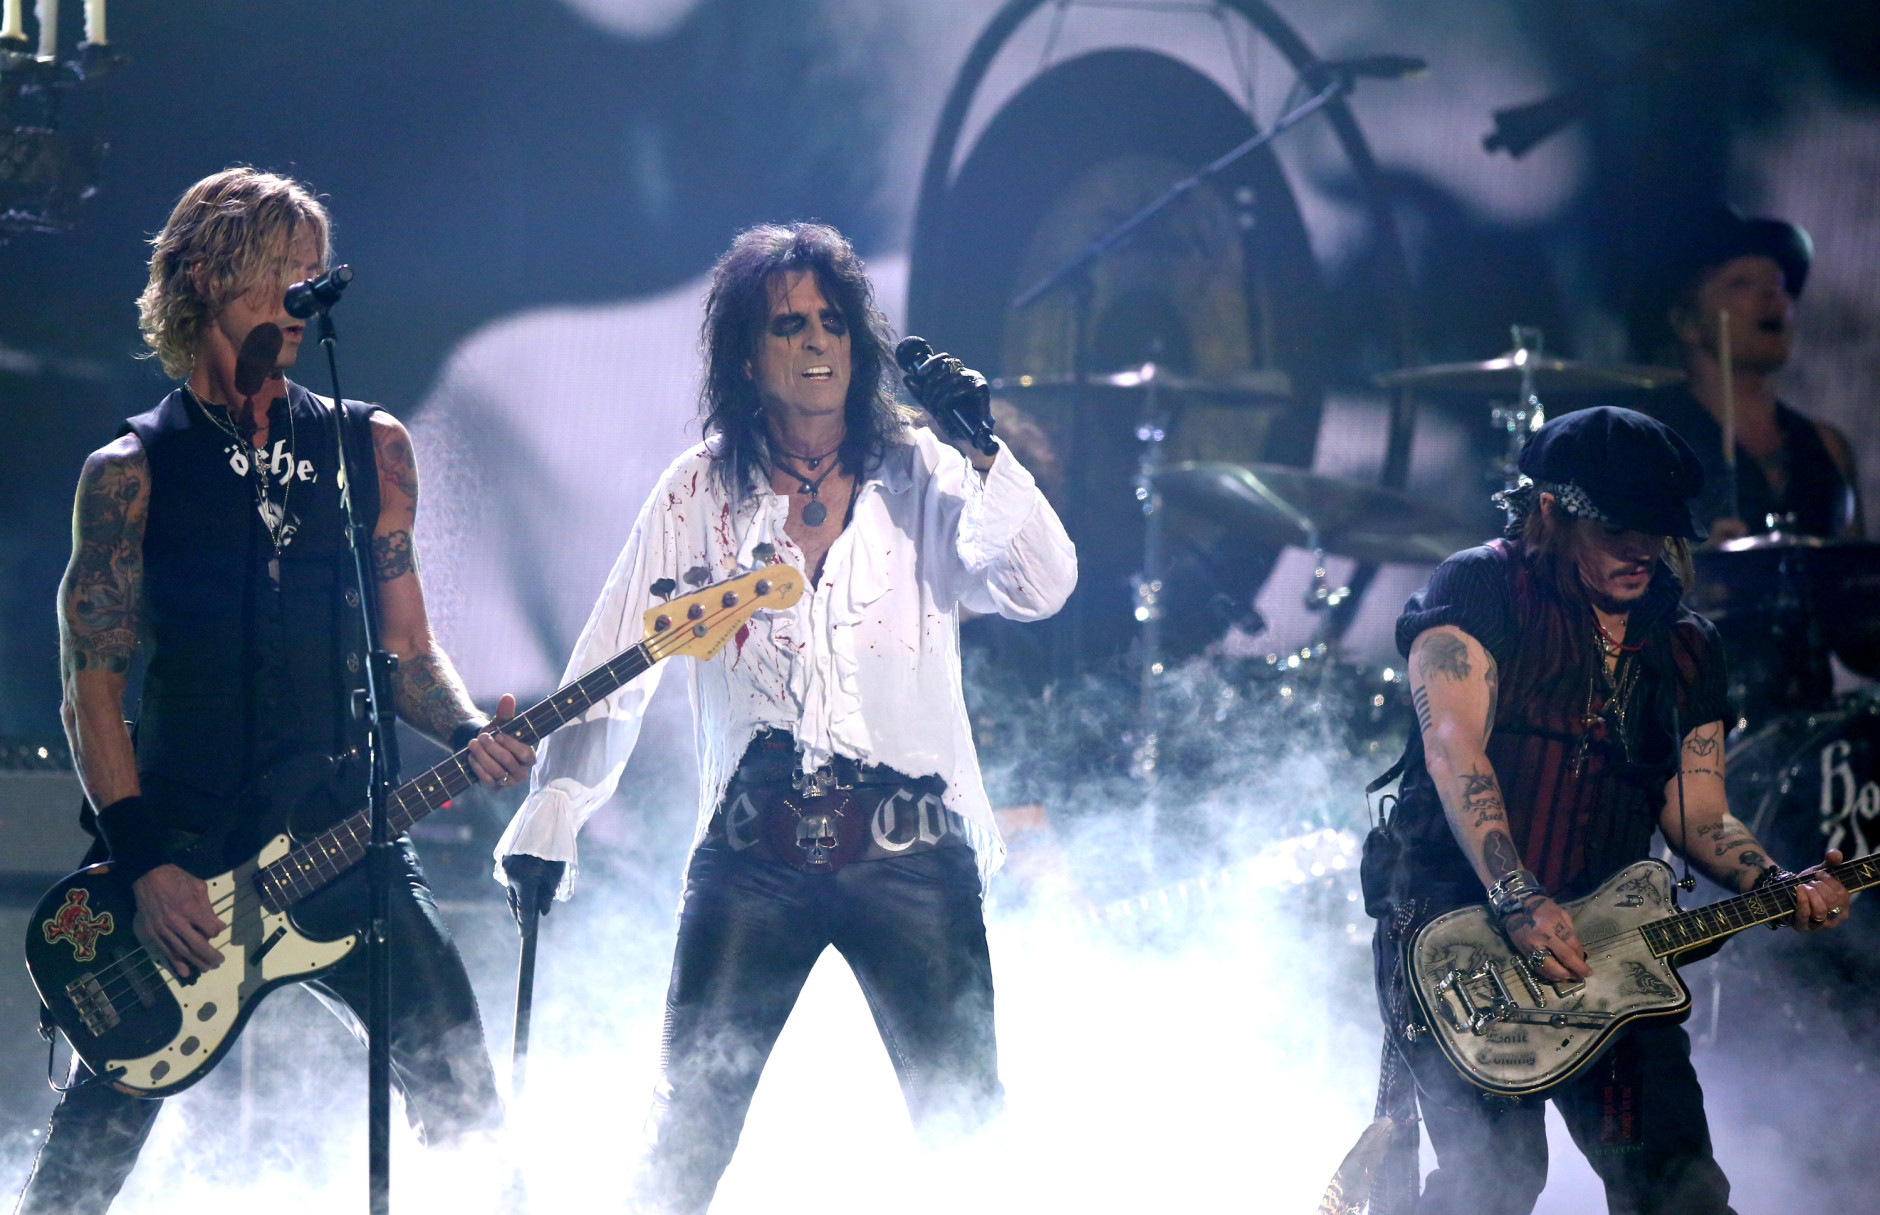 Duff McKagan, left, performs with Alice Cooper and Johnny Depp of Hollywood Vampires at the 58th annual Grammy Awards on Monday, Feb. 15, 2016, in Los Angeles. (Photo by Matt Sayles/Invision/AP)